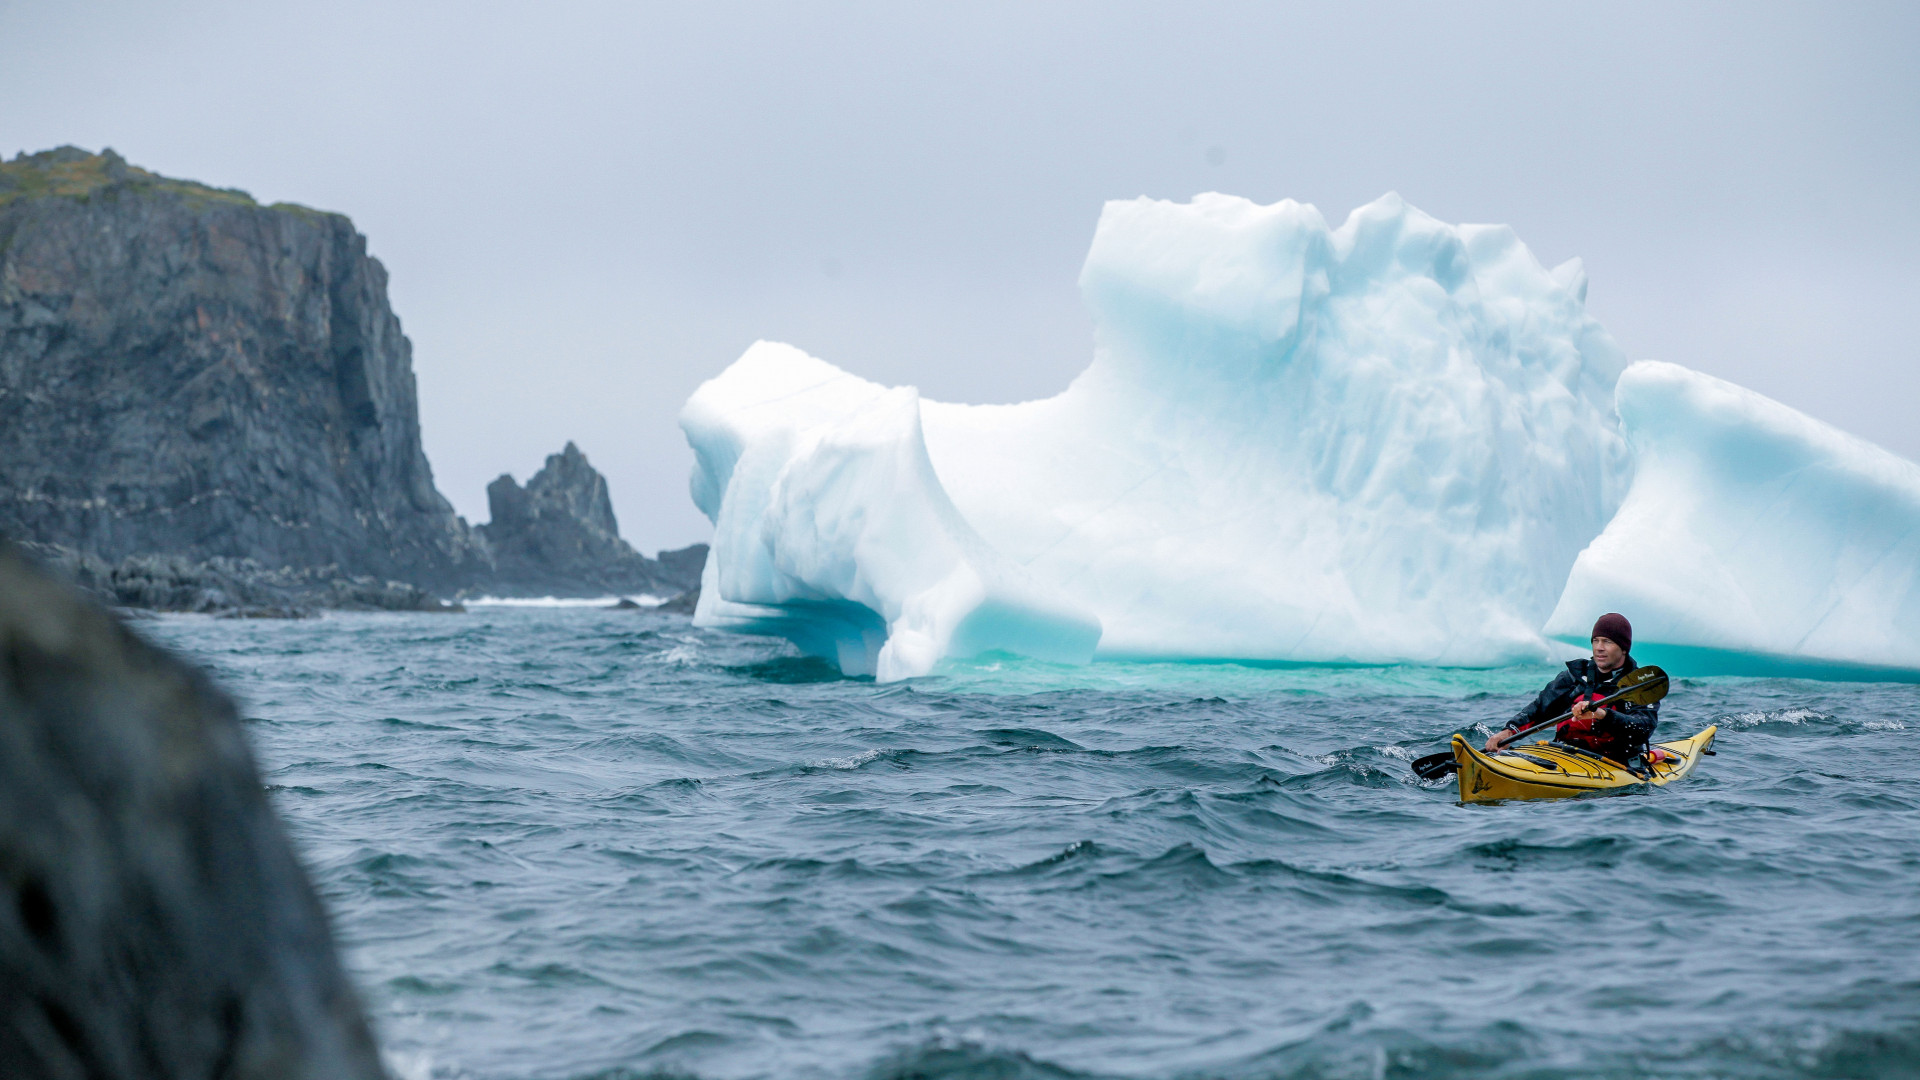 Kayaking past icebergs in Canada